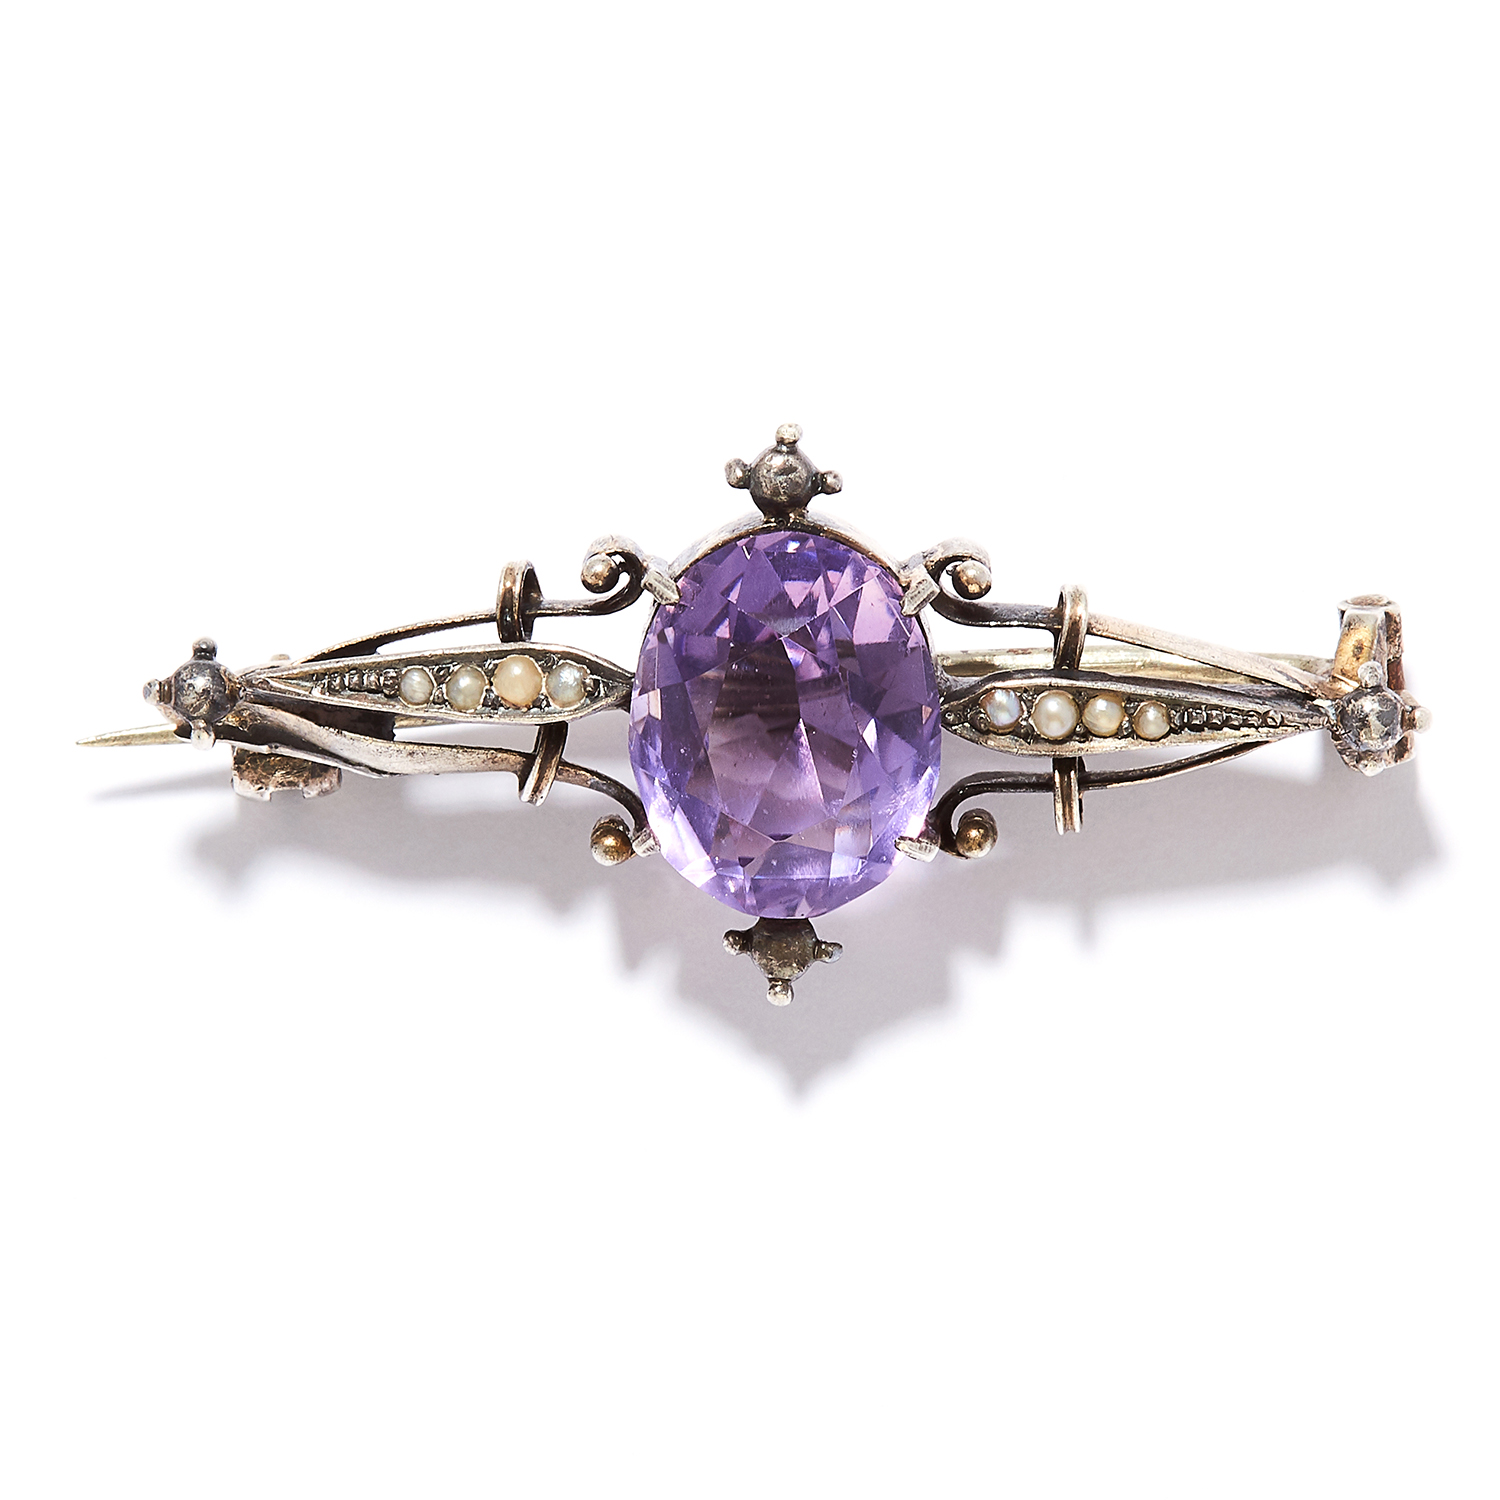 AN AMETHYST AND PEARL BROOCH in sterling silver, set with an oval cut amethyst between eight seed